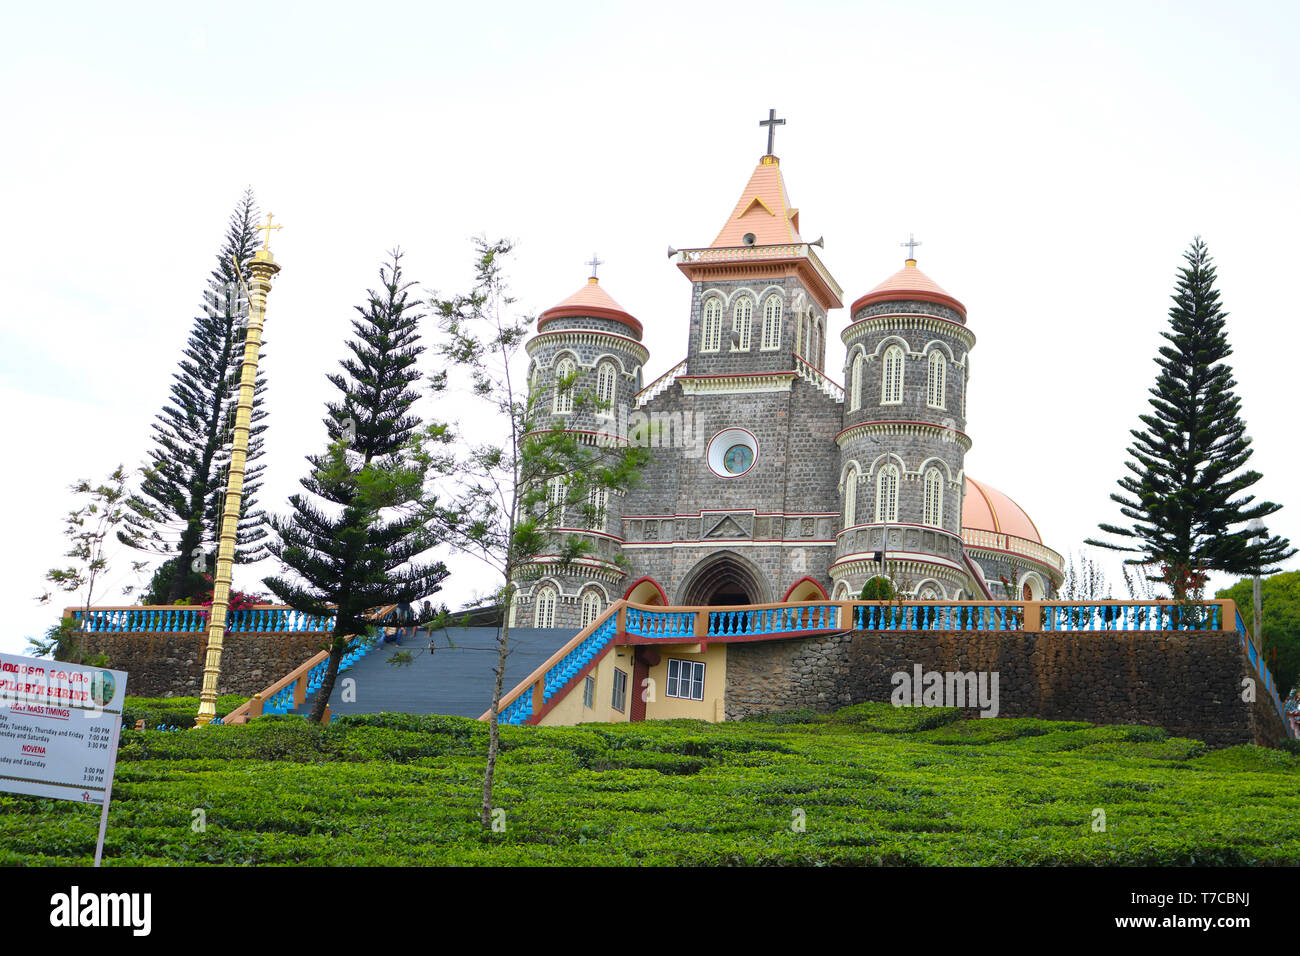 Our lady of good health church - Stock Image